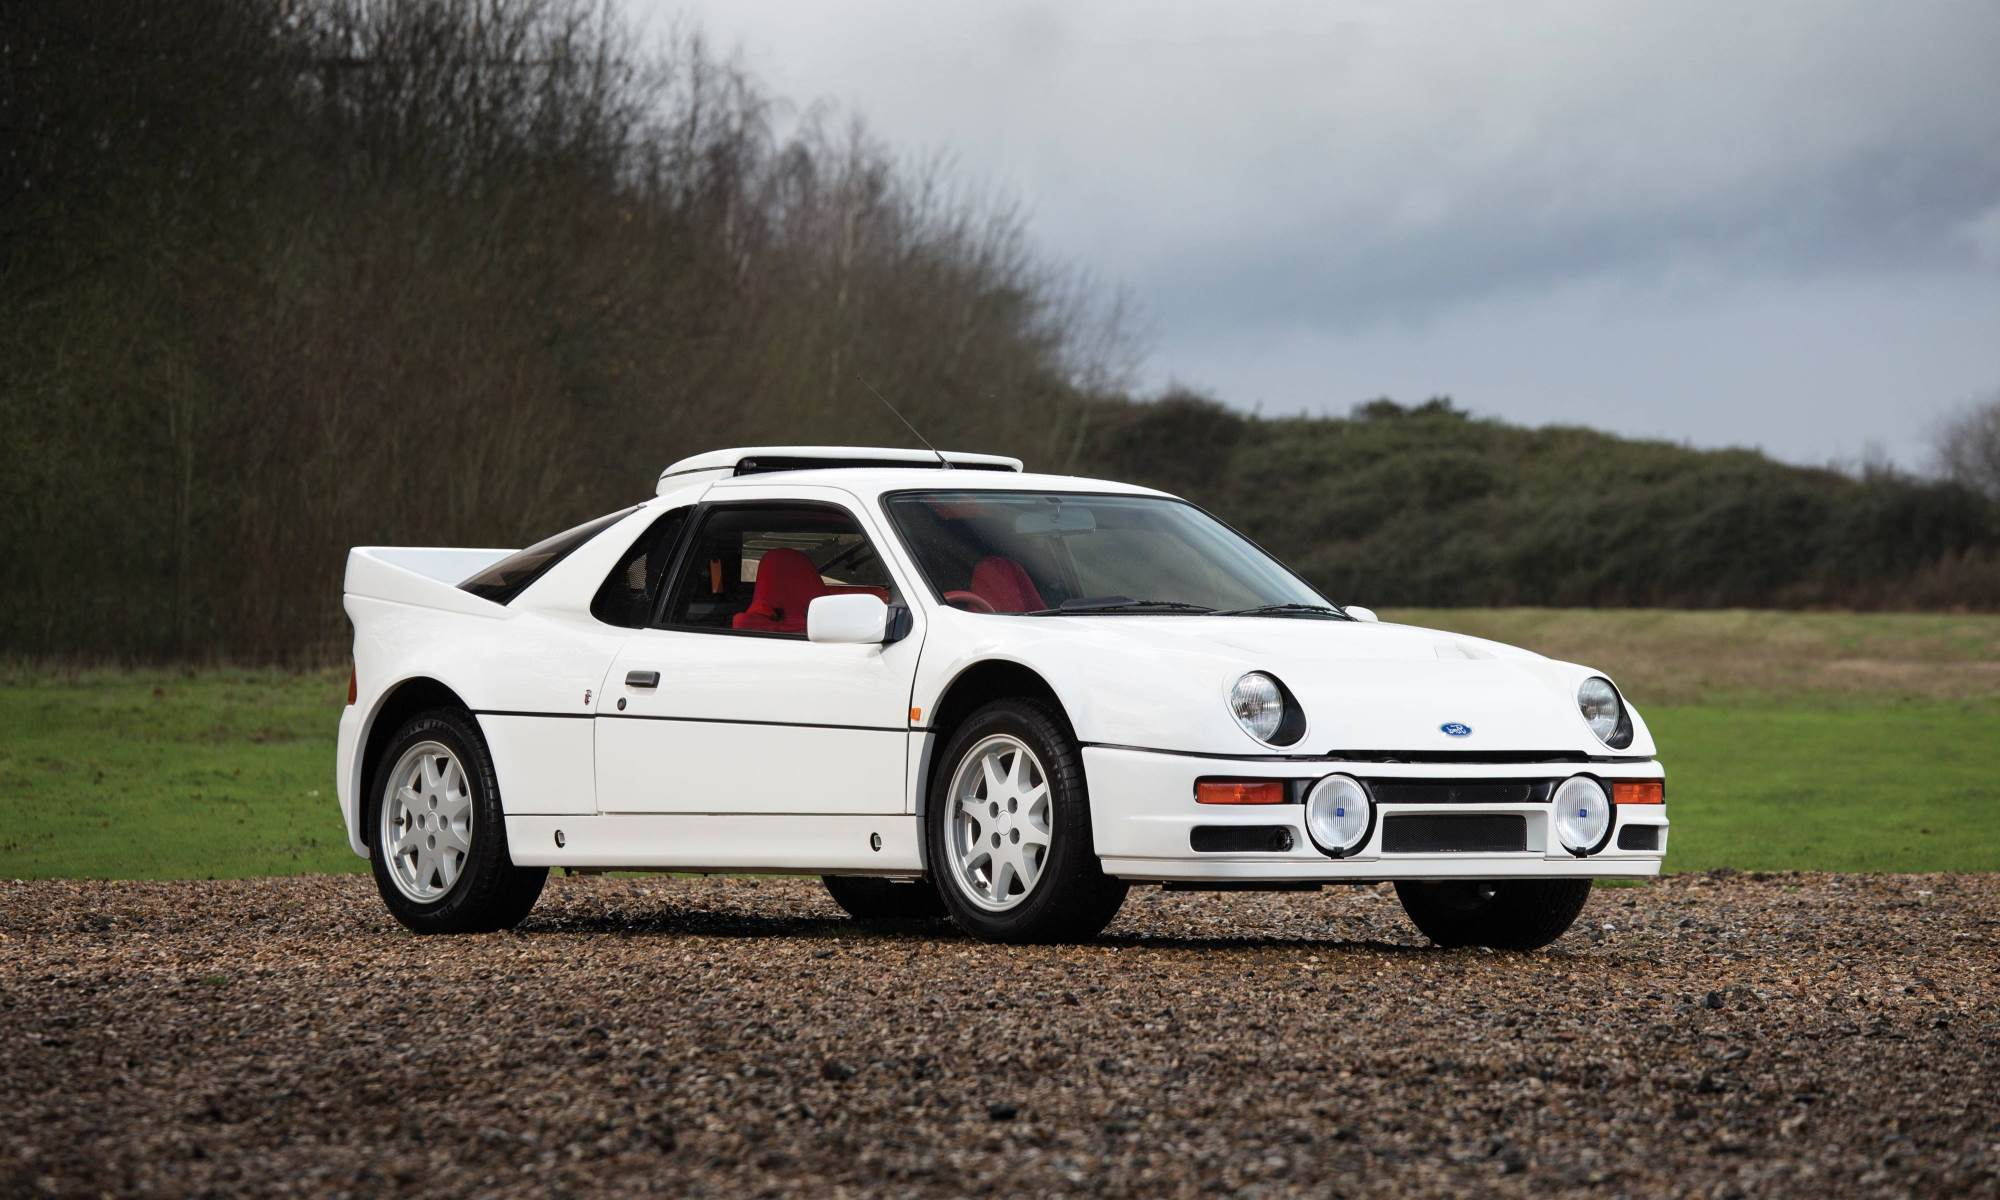 Ford RS200 was a road-going racecar